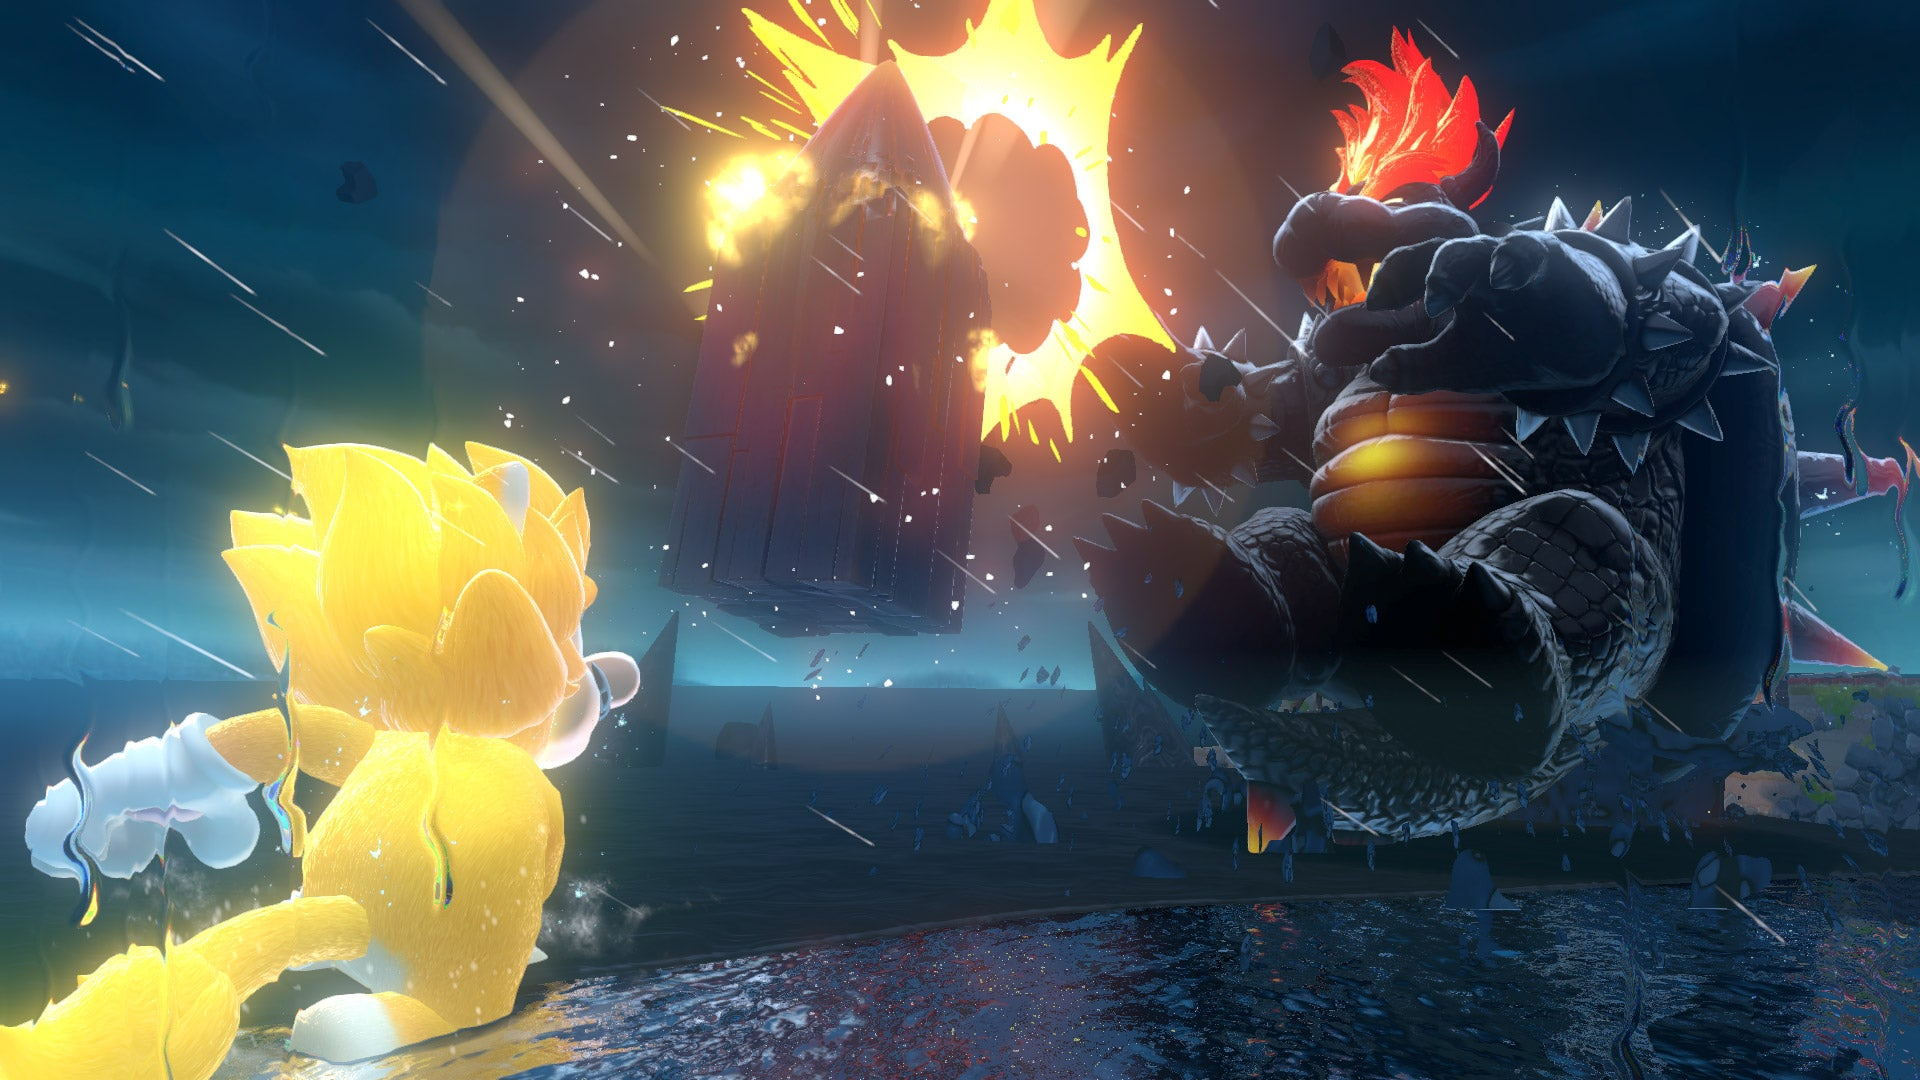 Bowser's Fury: Playing as a couple, this is how you activate the co-op multiplayer guide